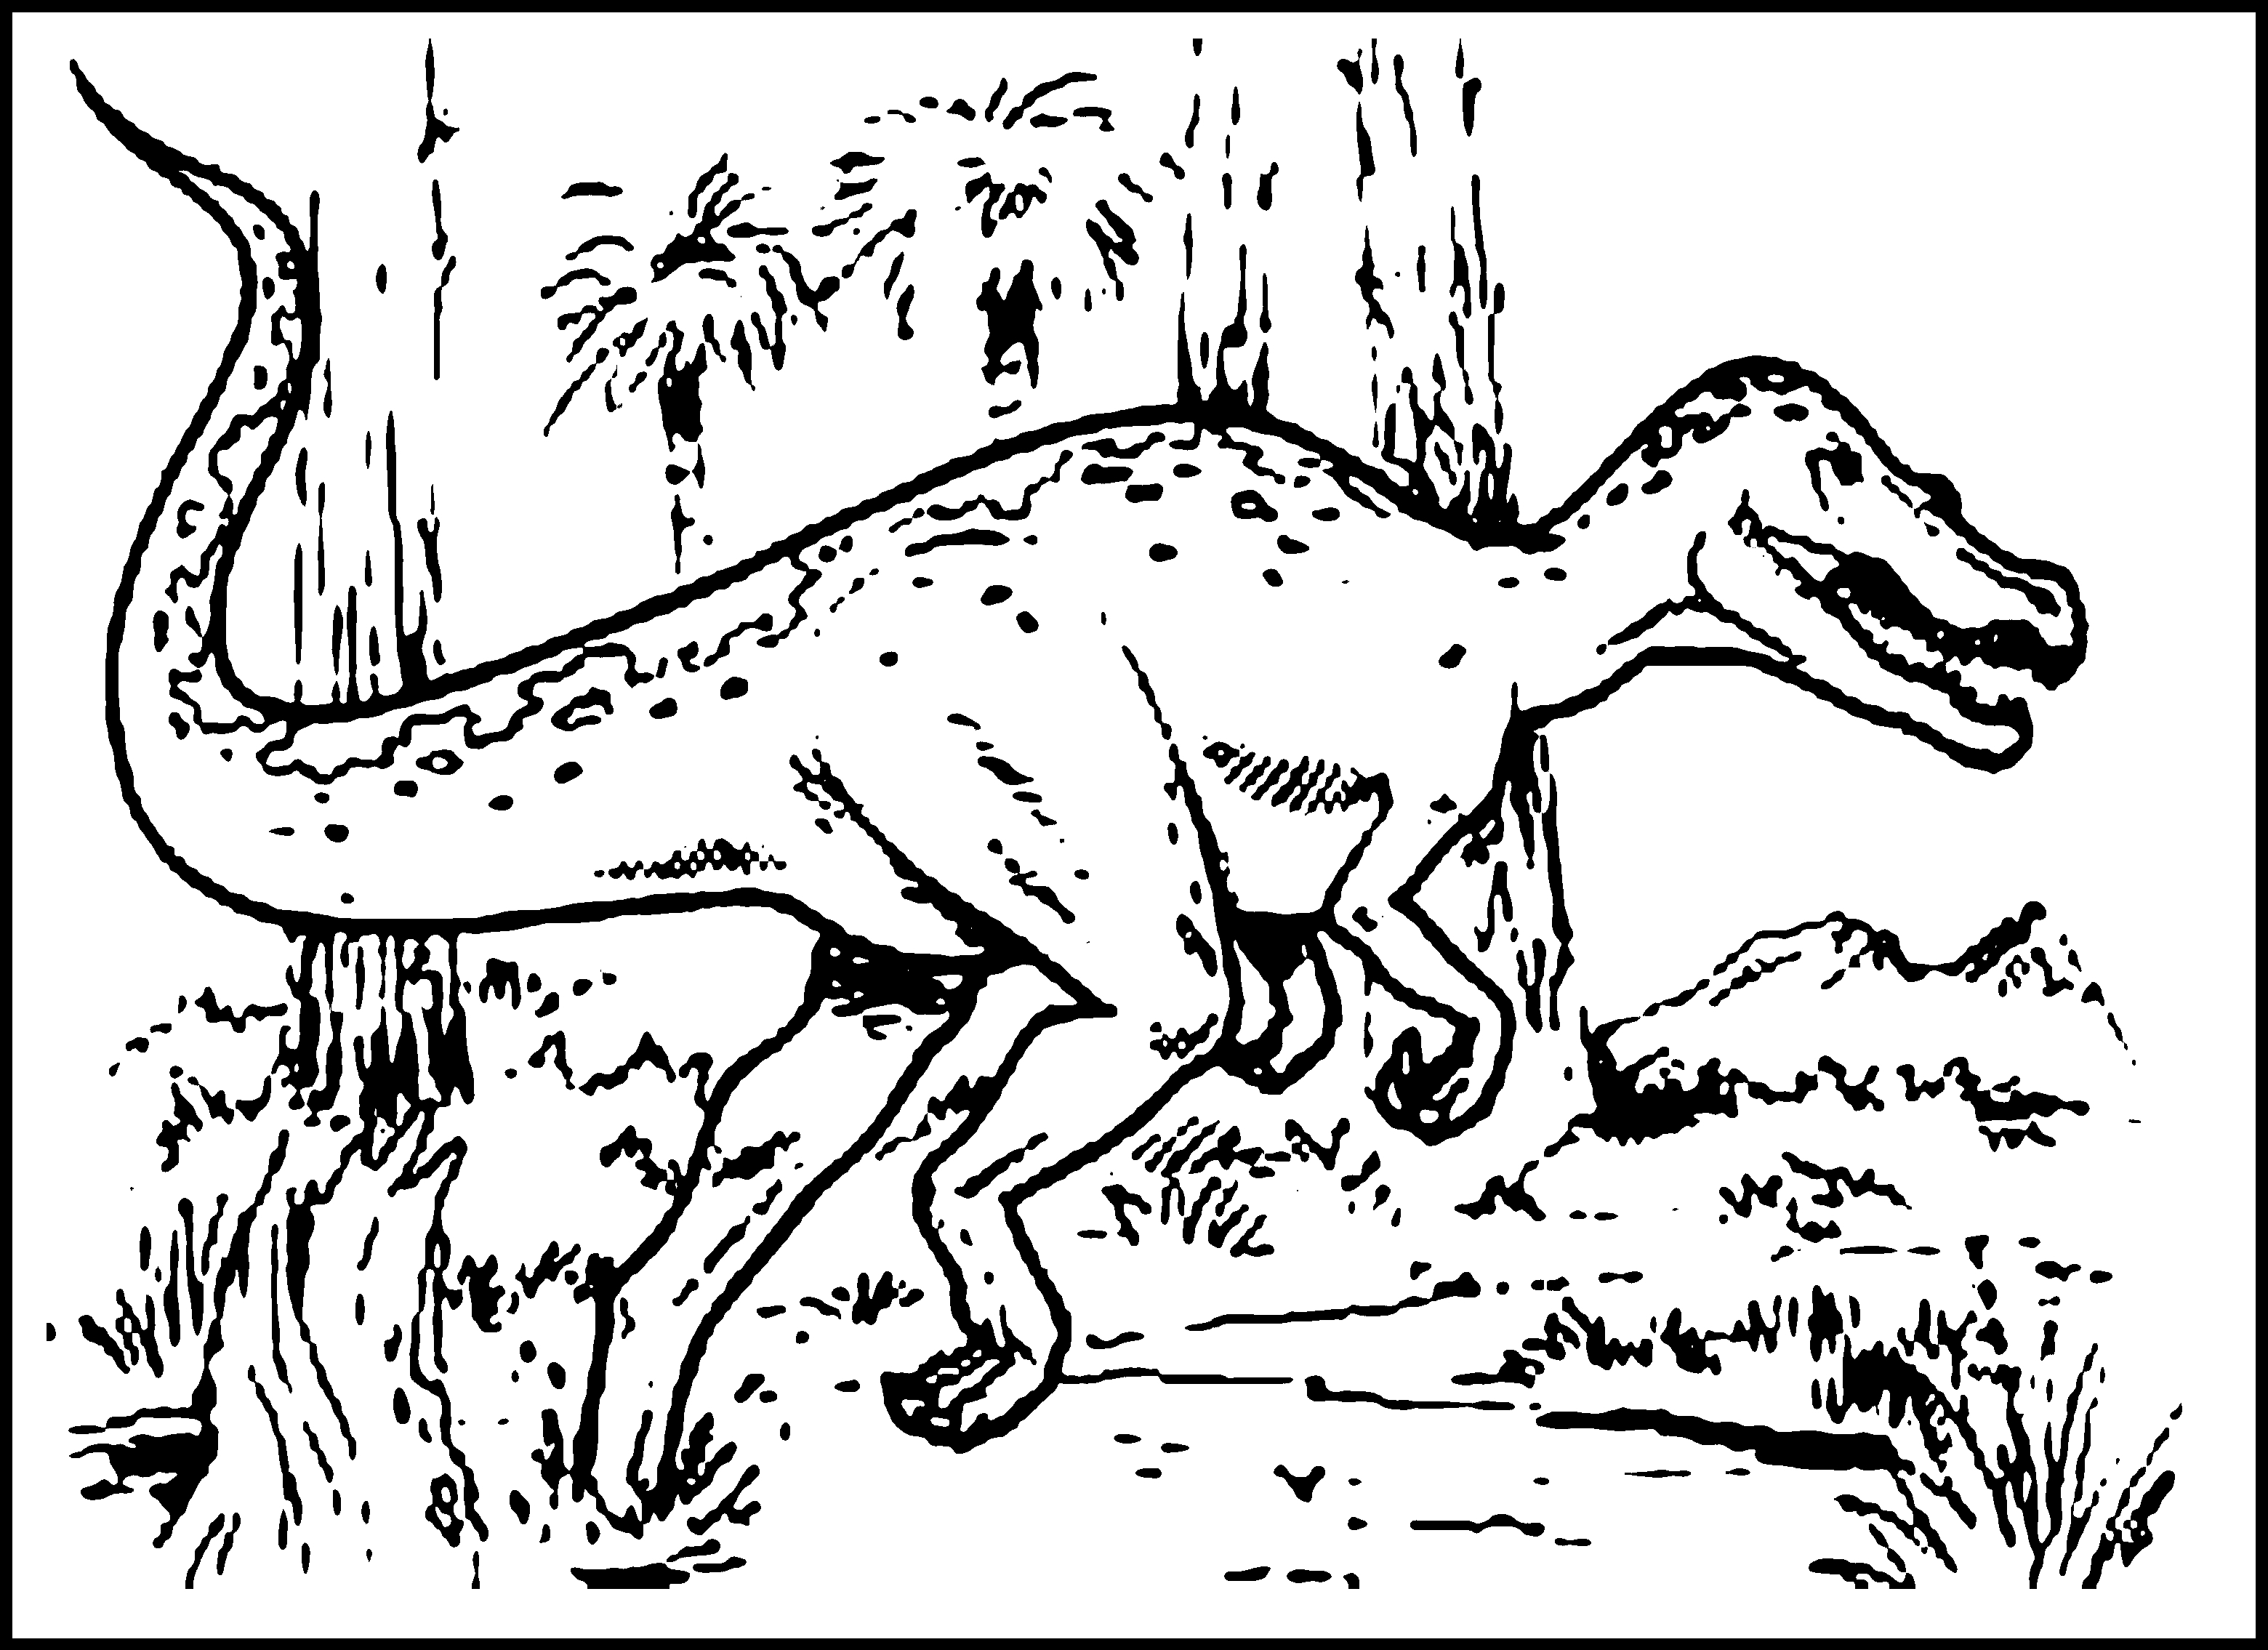 dinosaur coloring pages printable free coloring pages dinosaur free printable coloring pages printable dinosaur coloring pages free